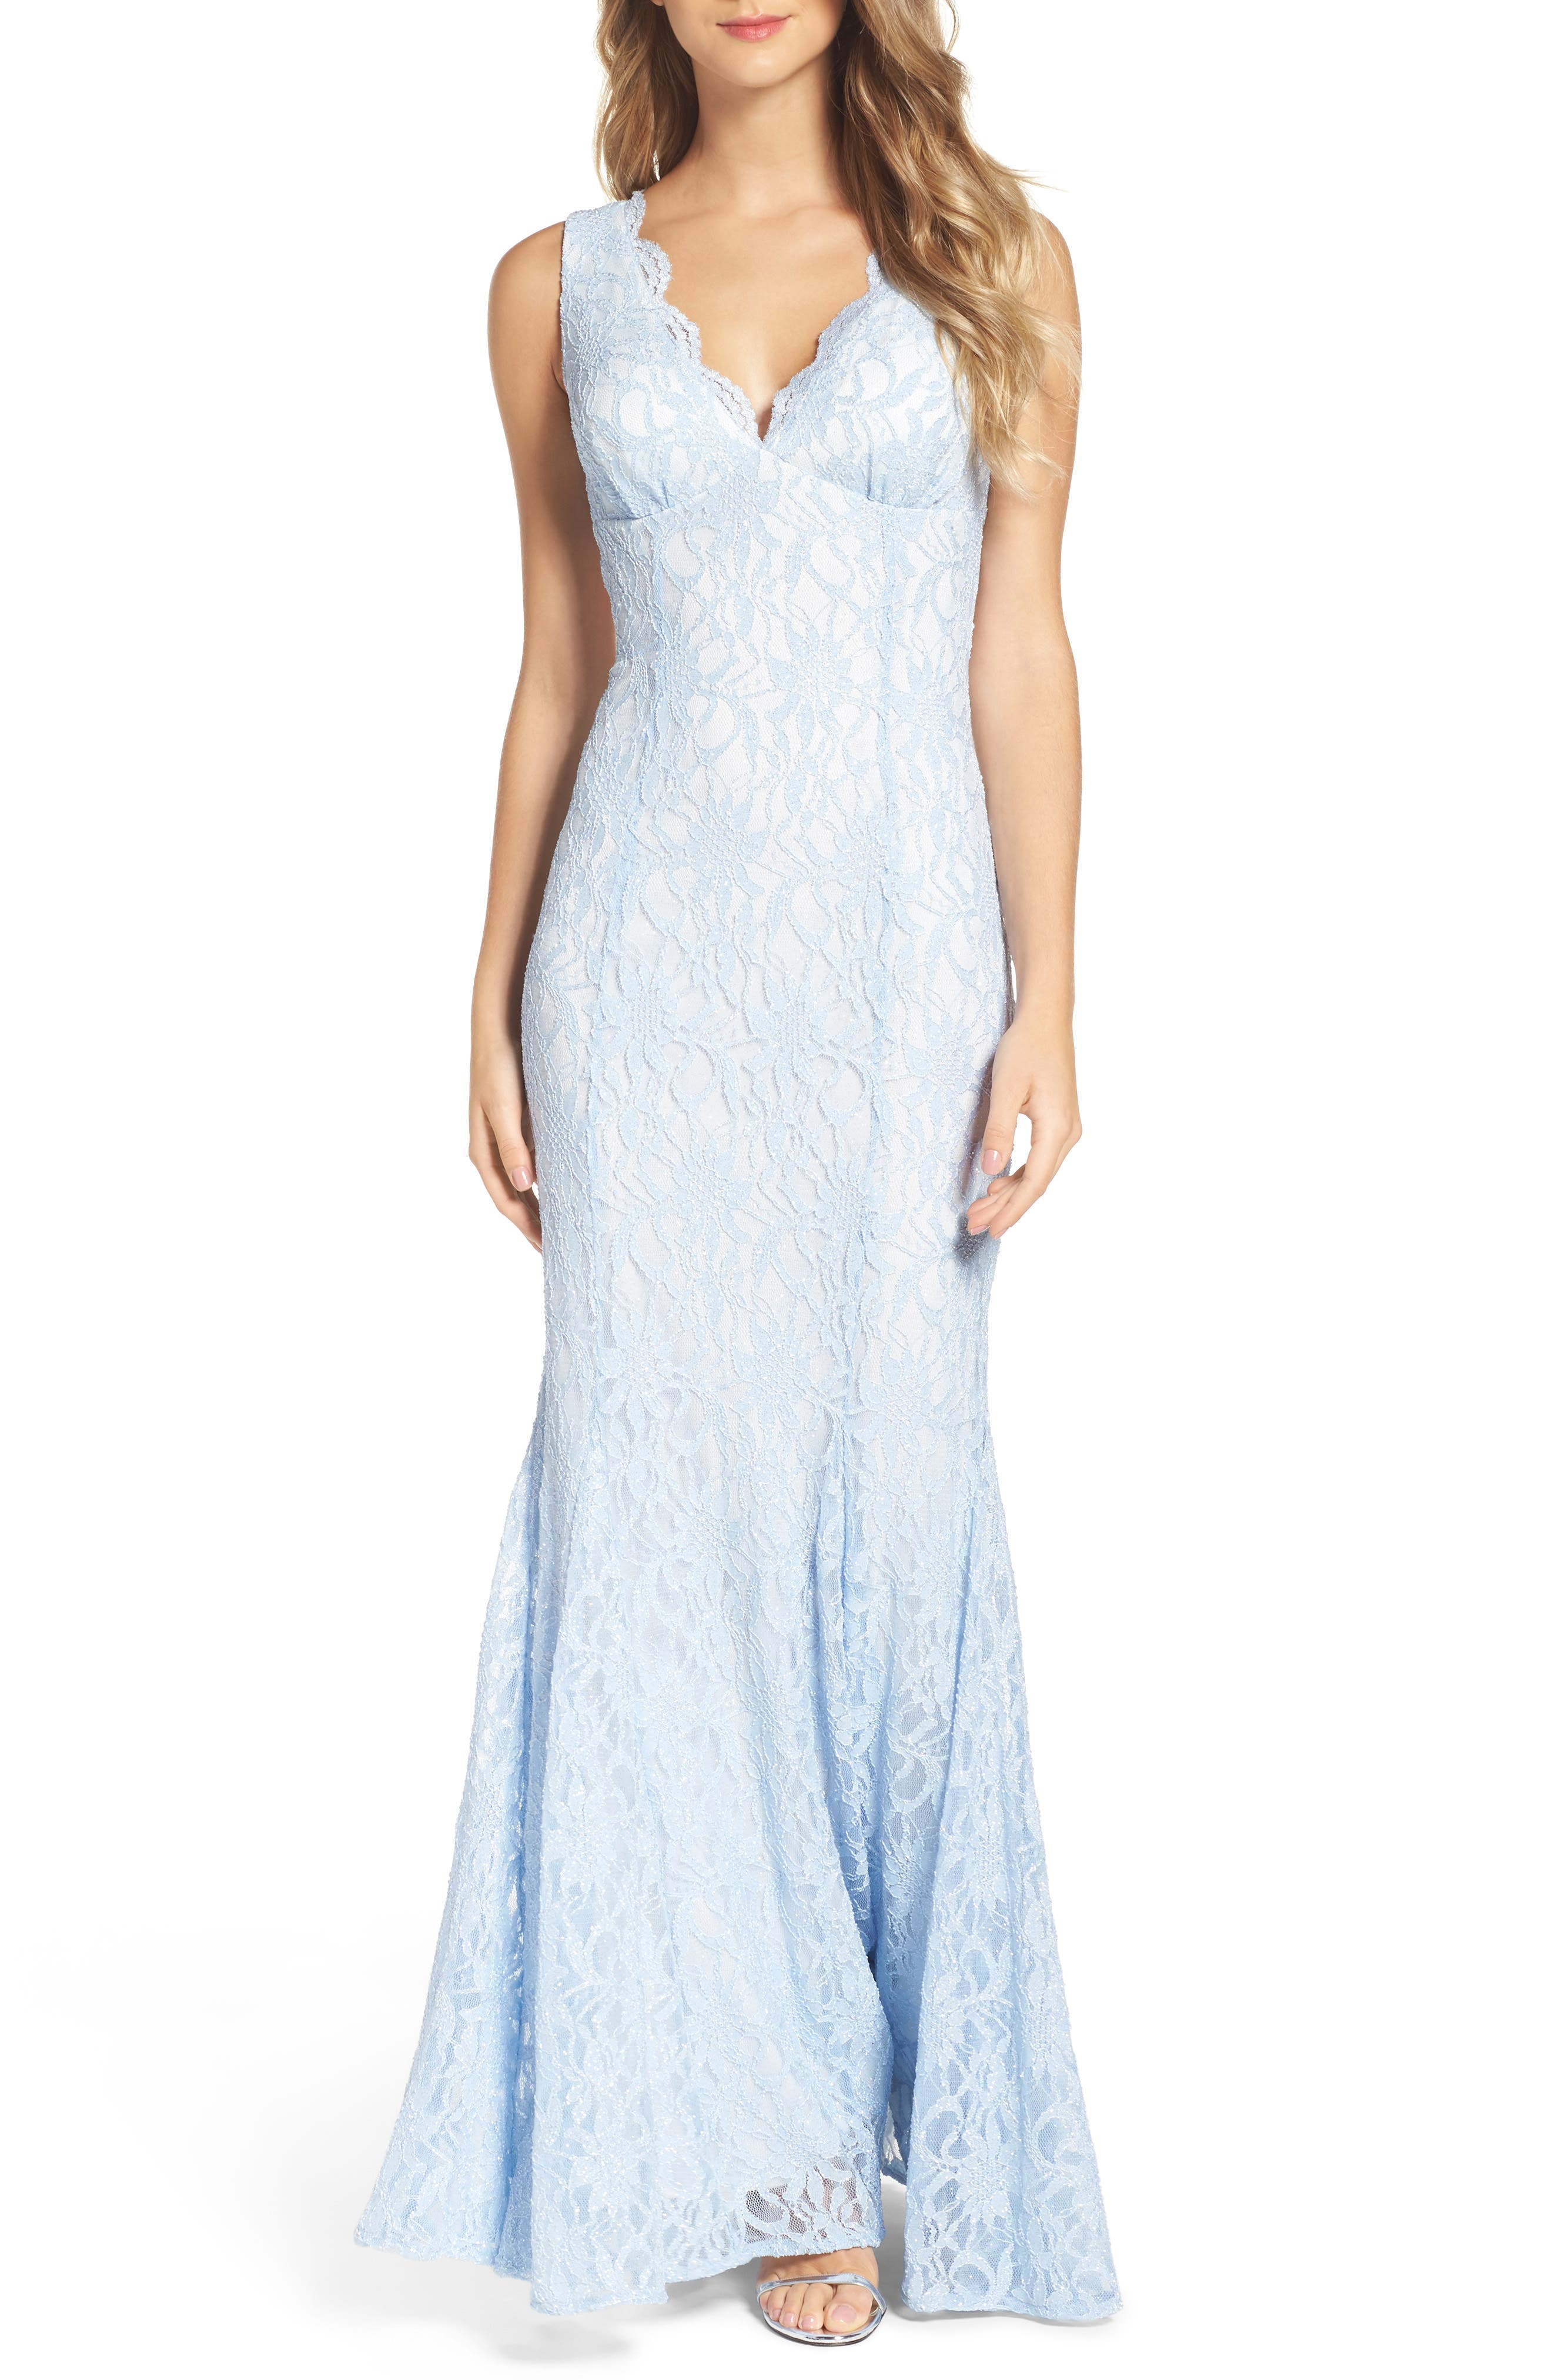 Alternate Image 1 Selected - Morgan & Co. Glitter Lace Gown